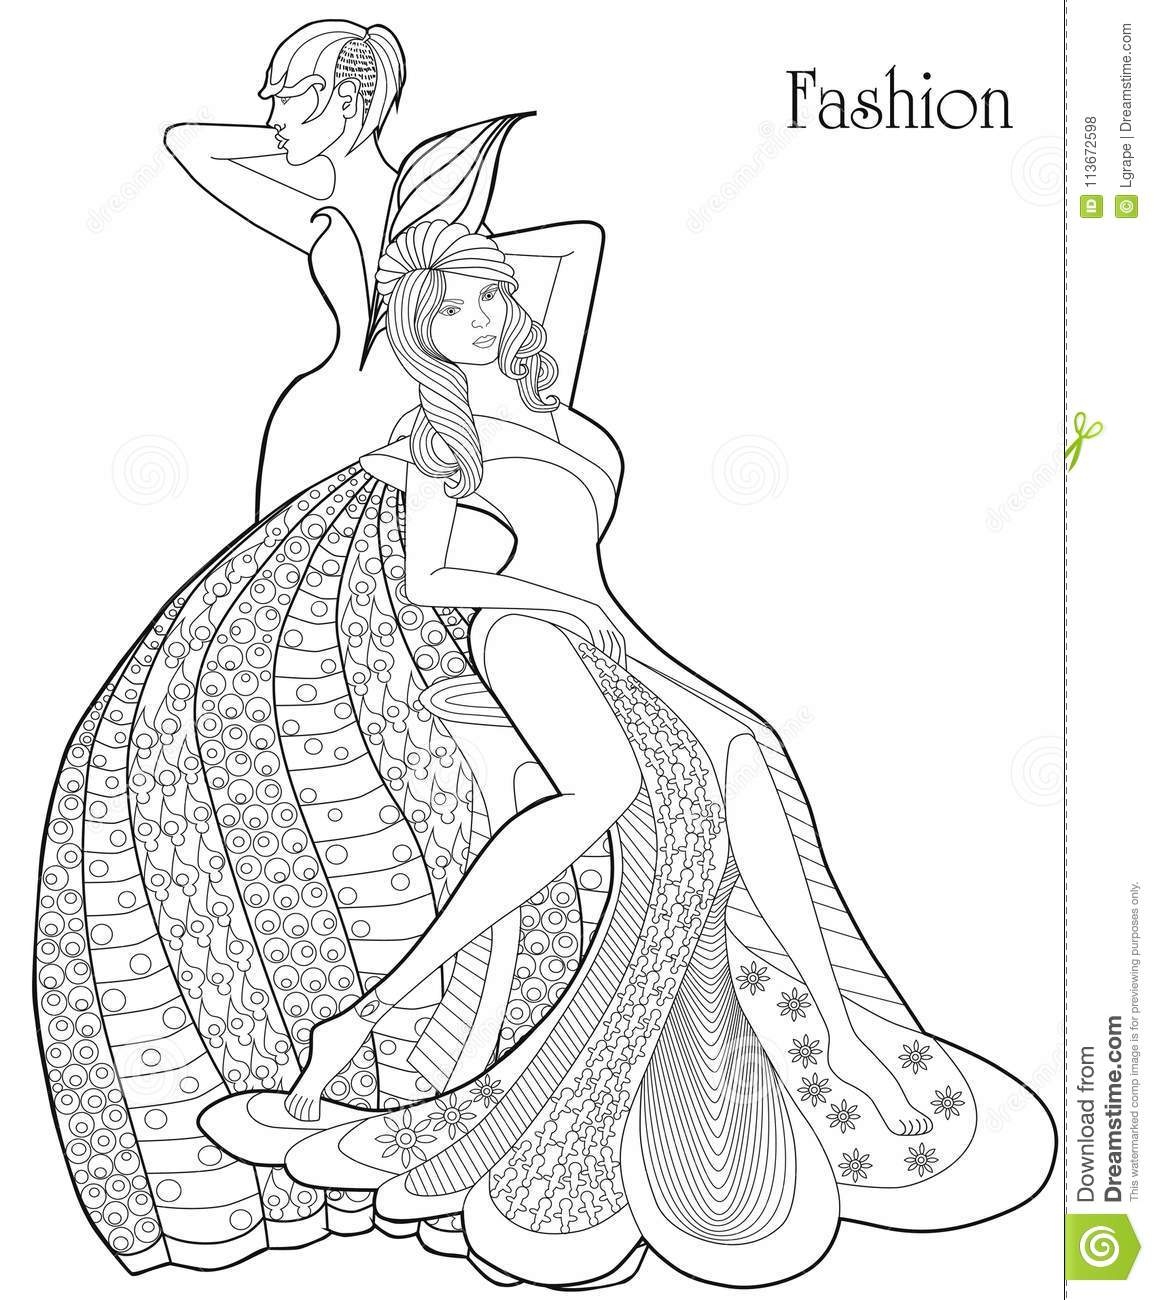 Download Color Therapy Fashion Anti Stress Coloring Book A Pair Of Girls